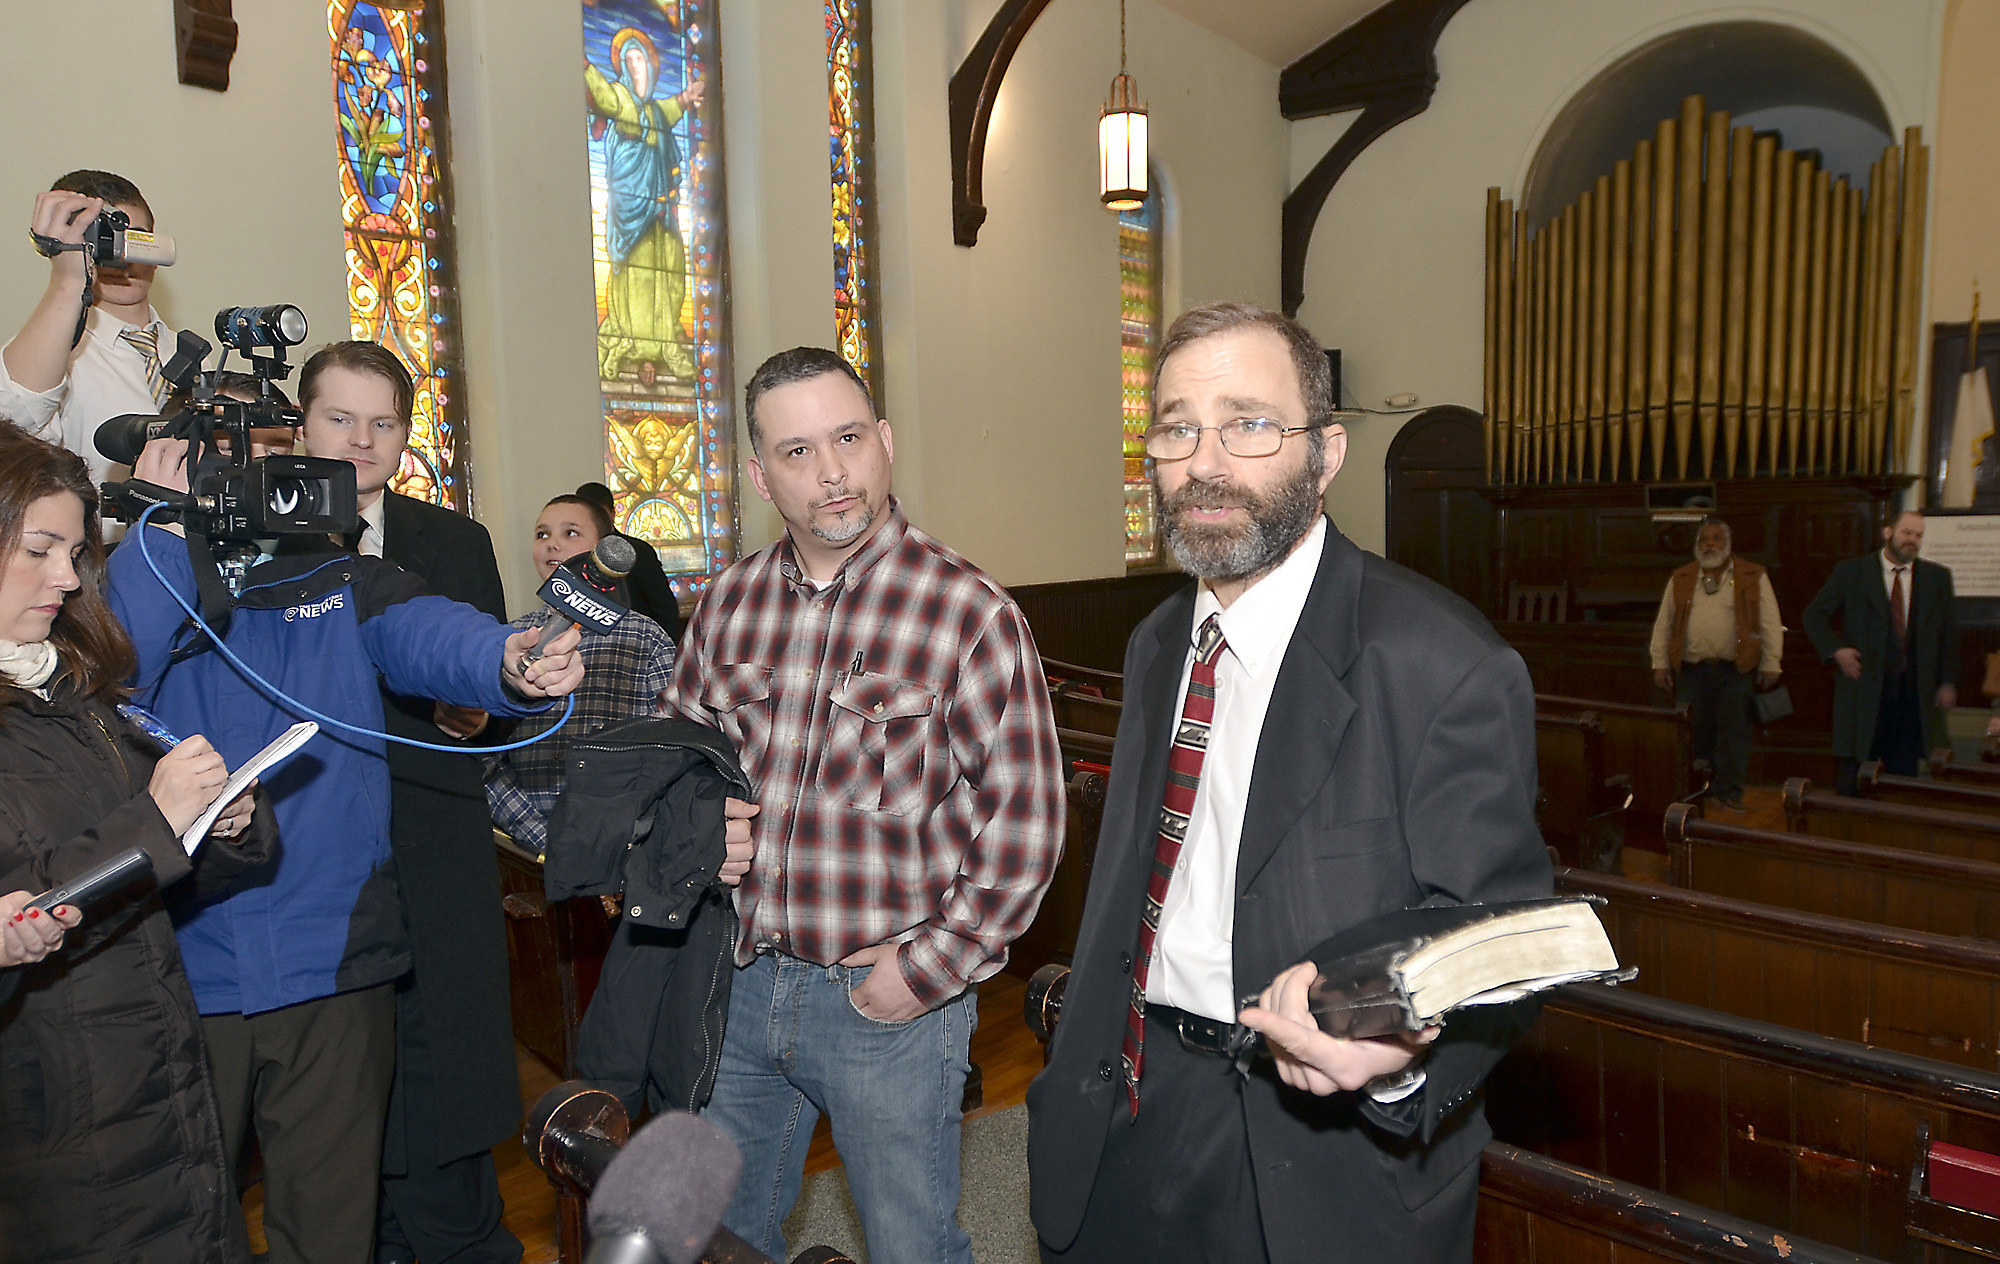 A camera crew interviews two men in a church. One holds a bible